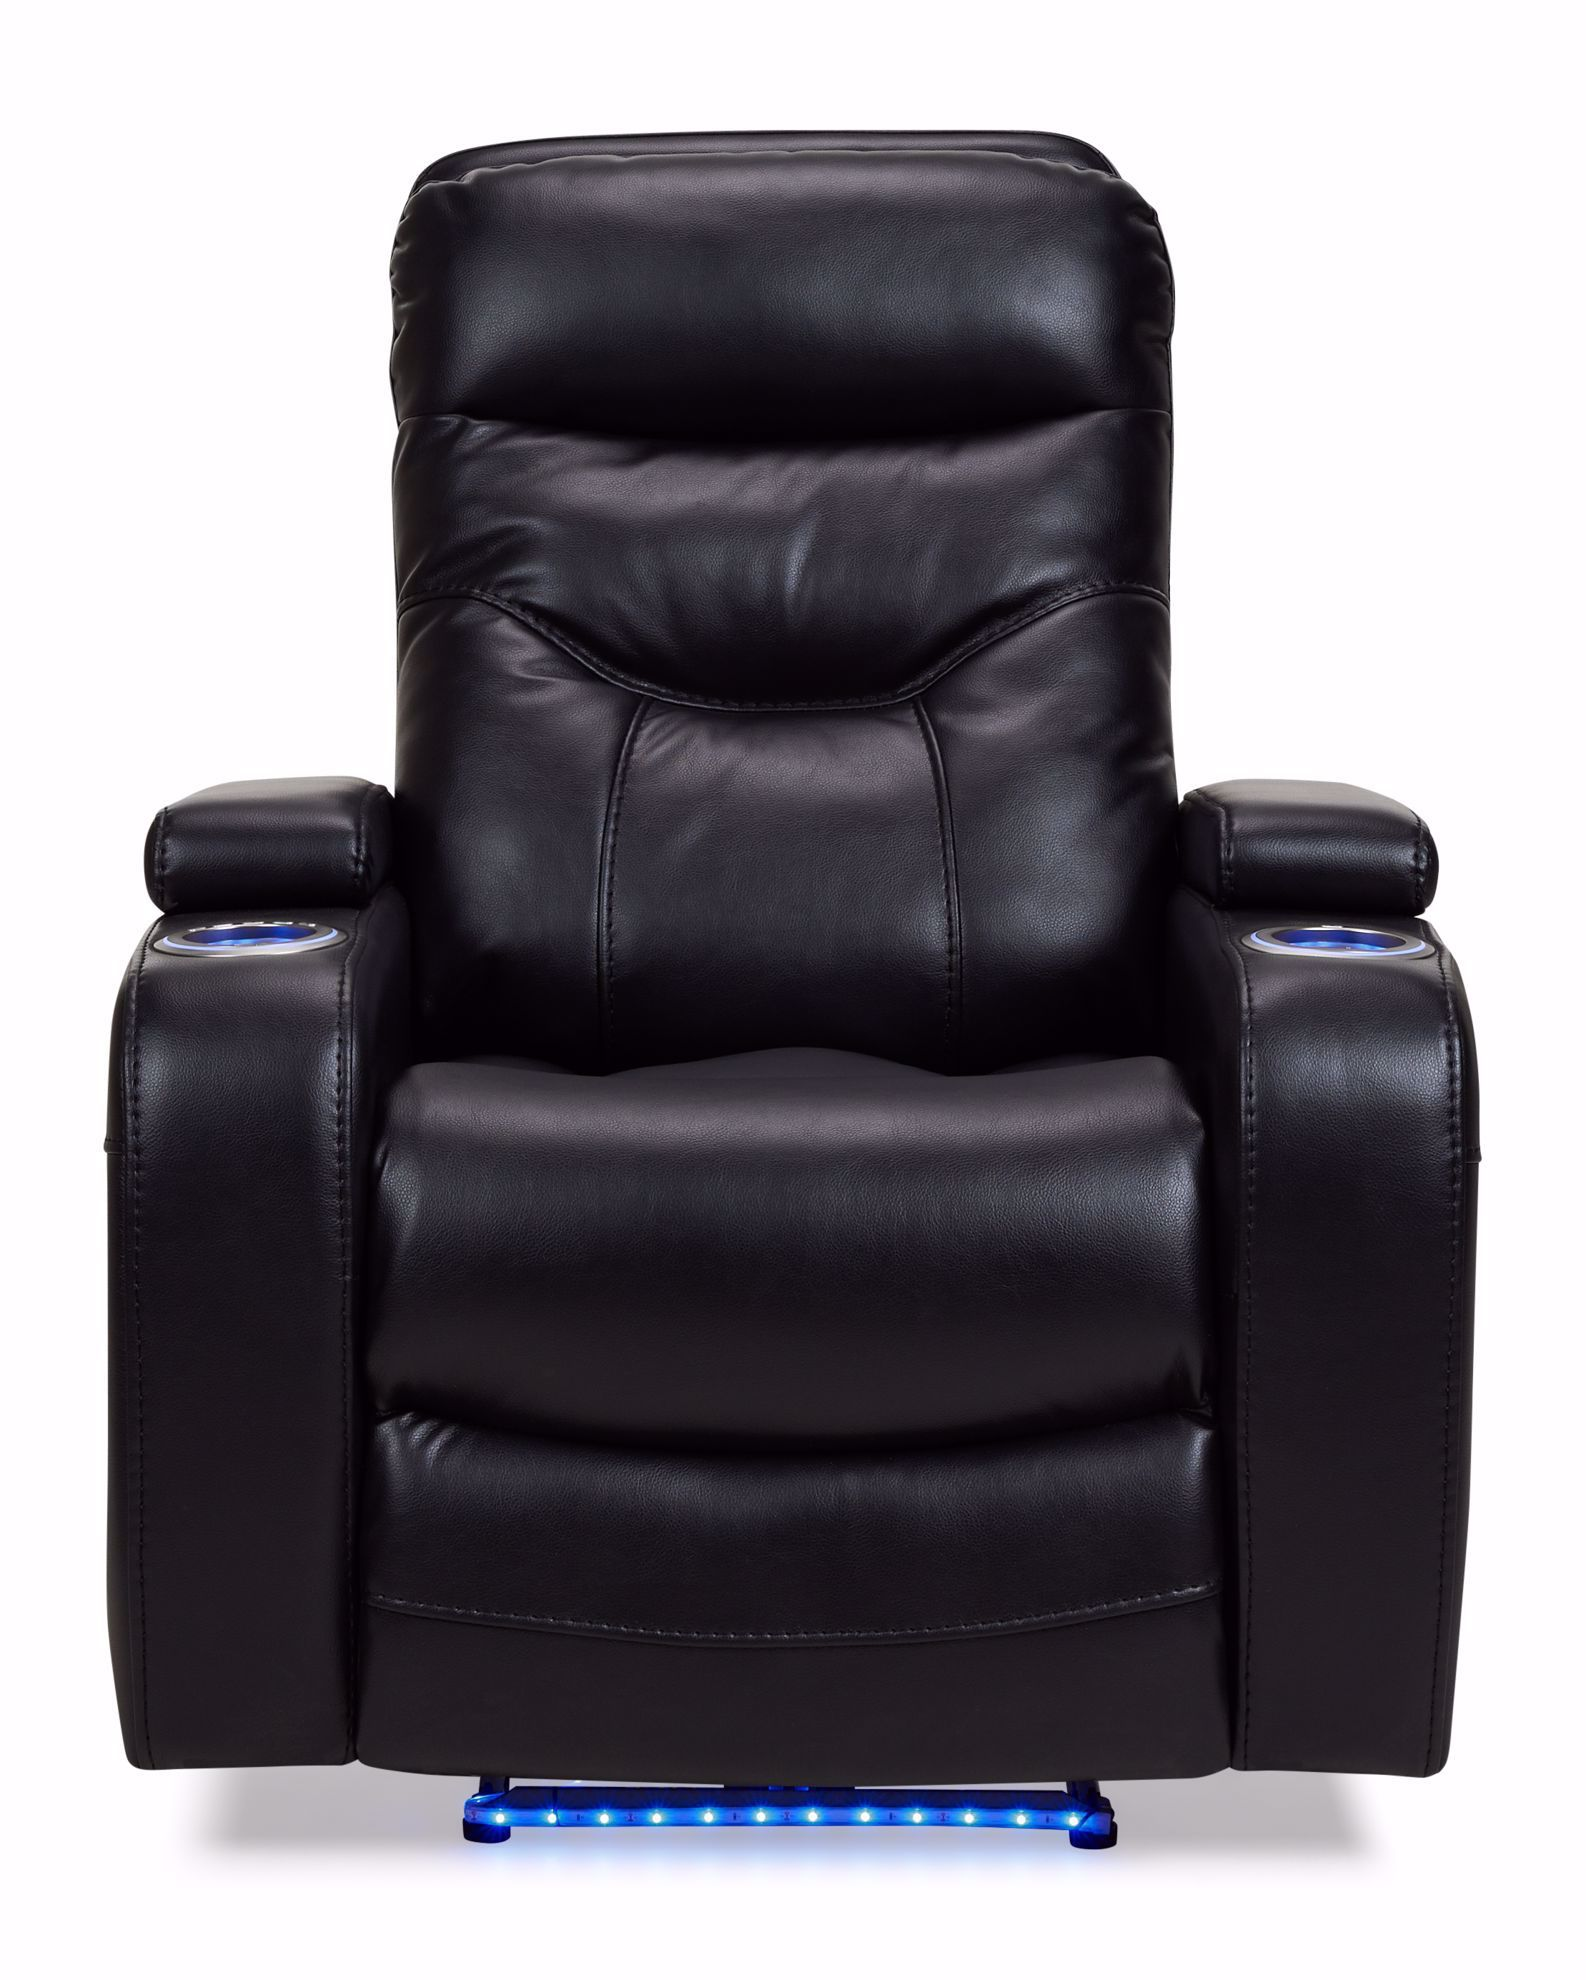 Picture of Oslo Black Power Recliner With Lights